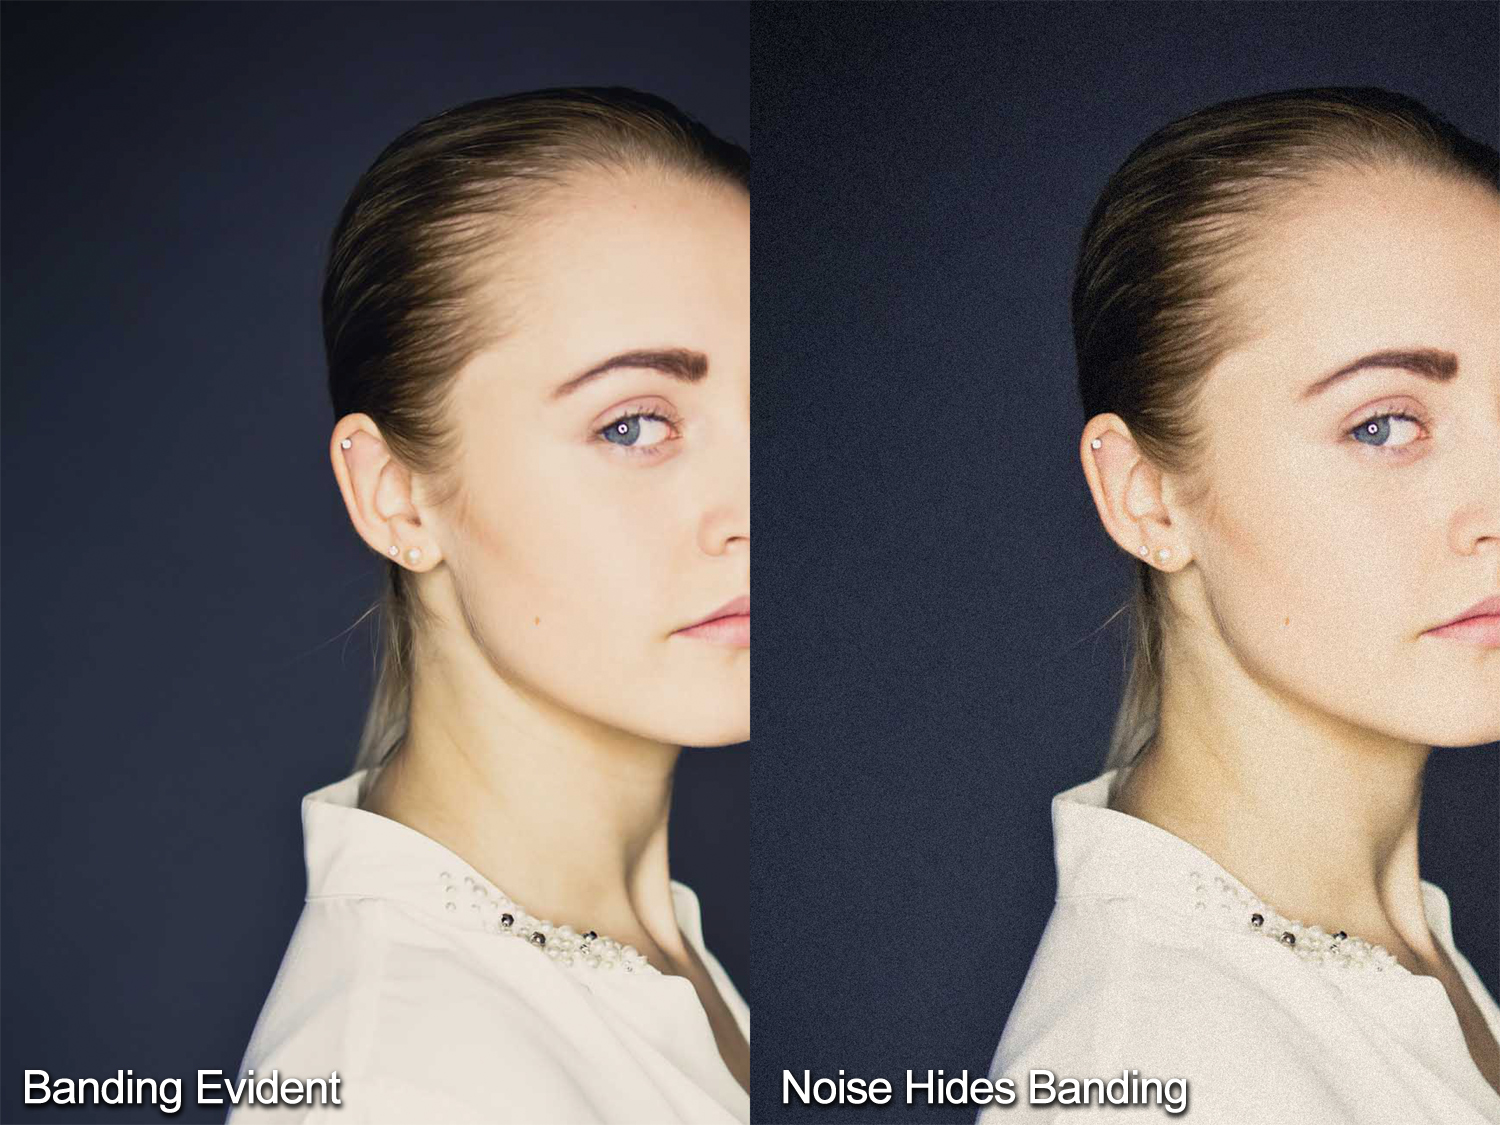 Photos showing banding in an image